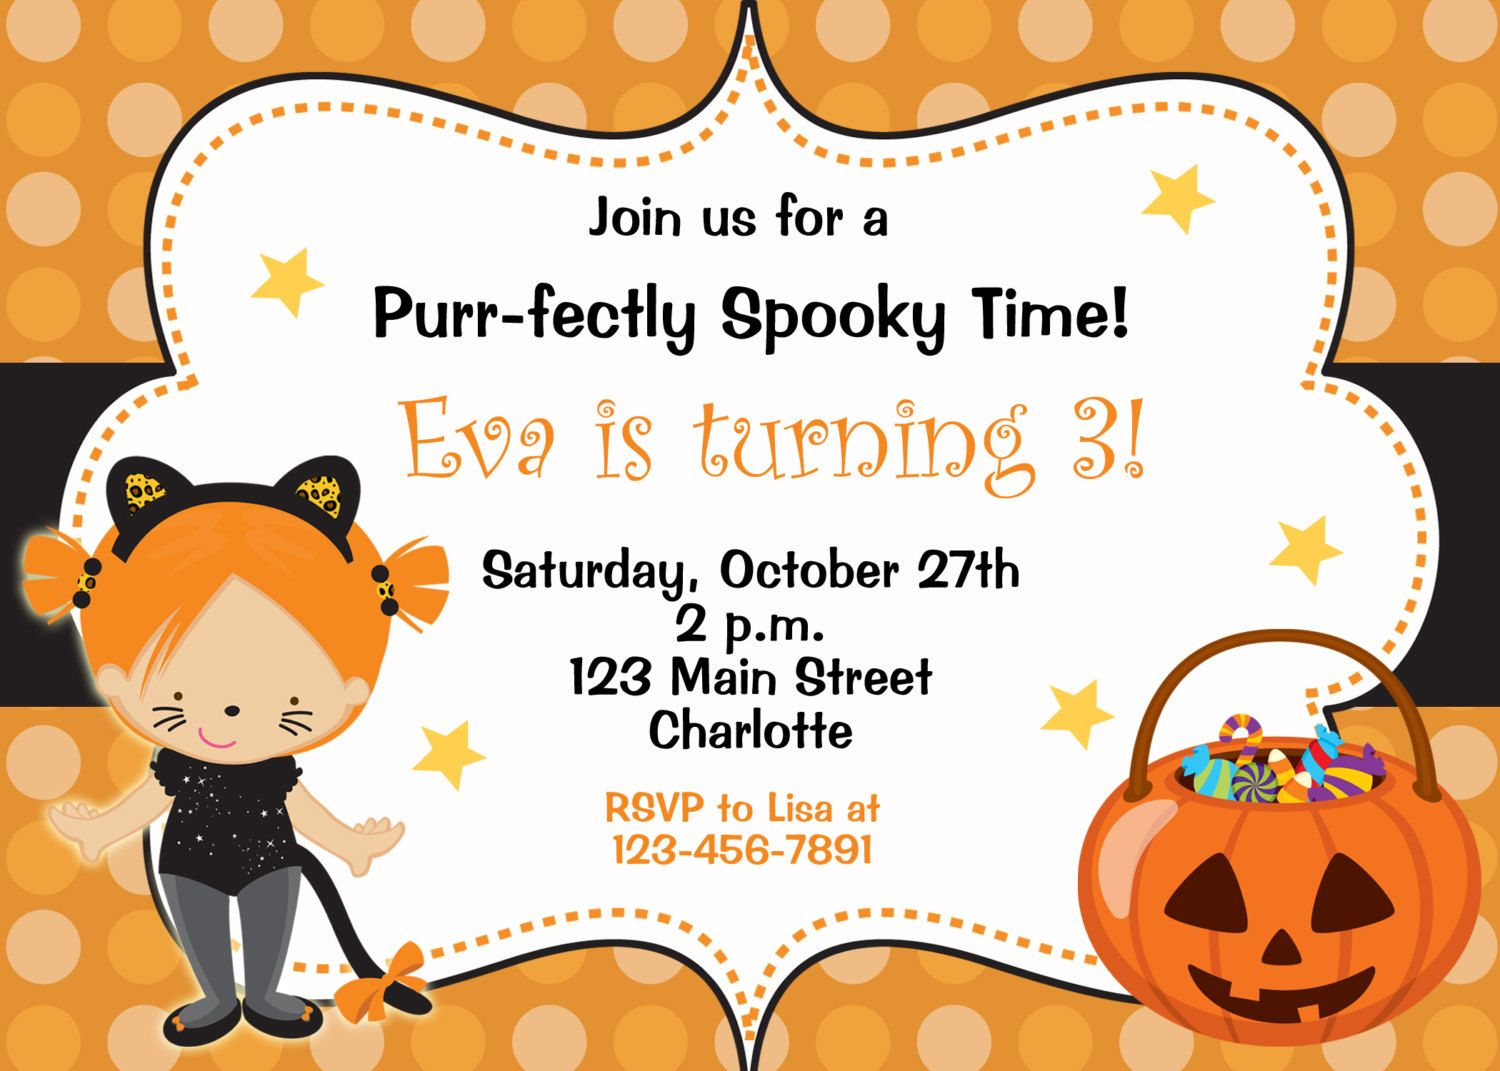 Magnificent Halloween Party Invitations Kids Images - Invitation ...